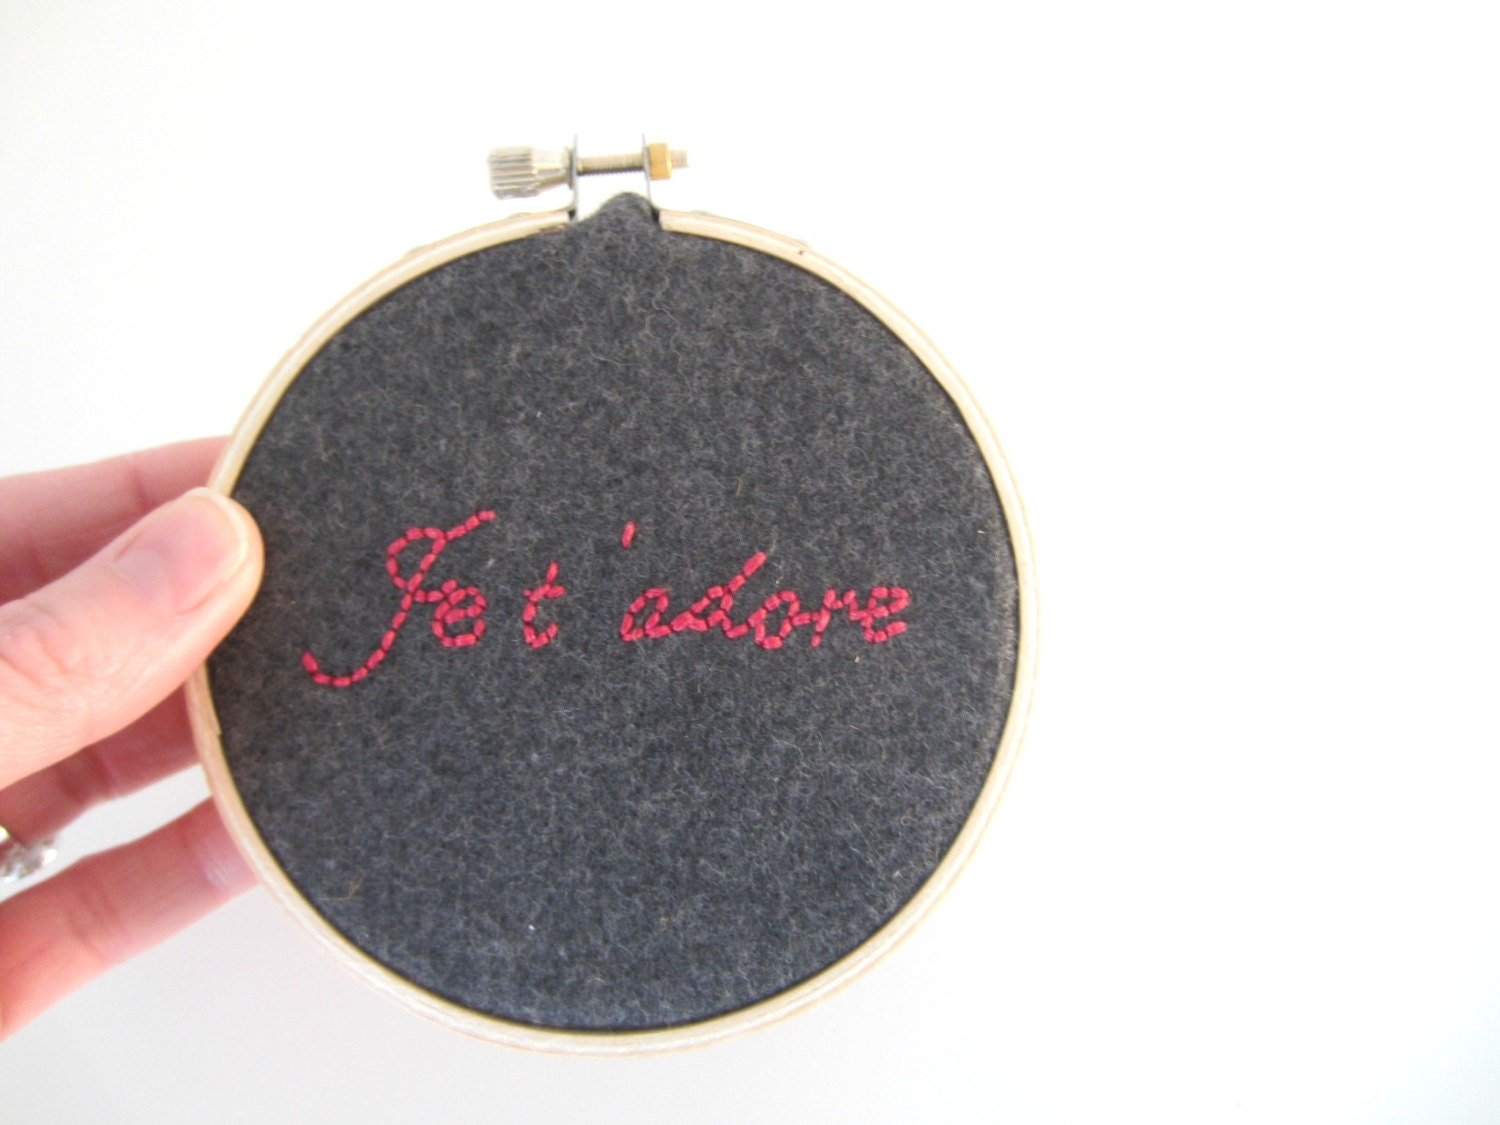 Embroidered Hoop Art Charcoal Pink - Je t'adore - I adore you - ittybittybag